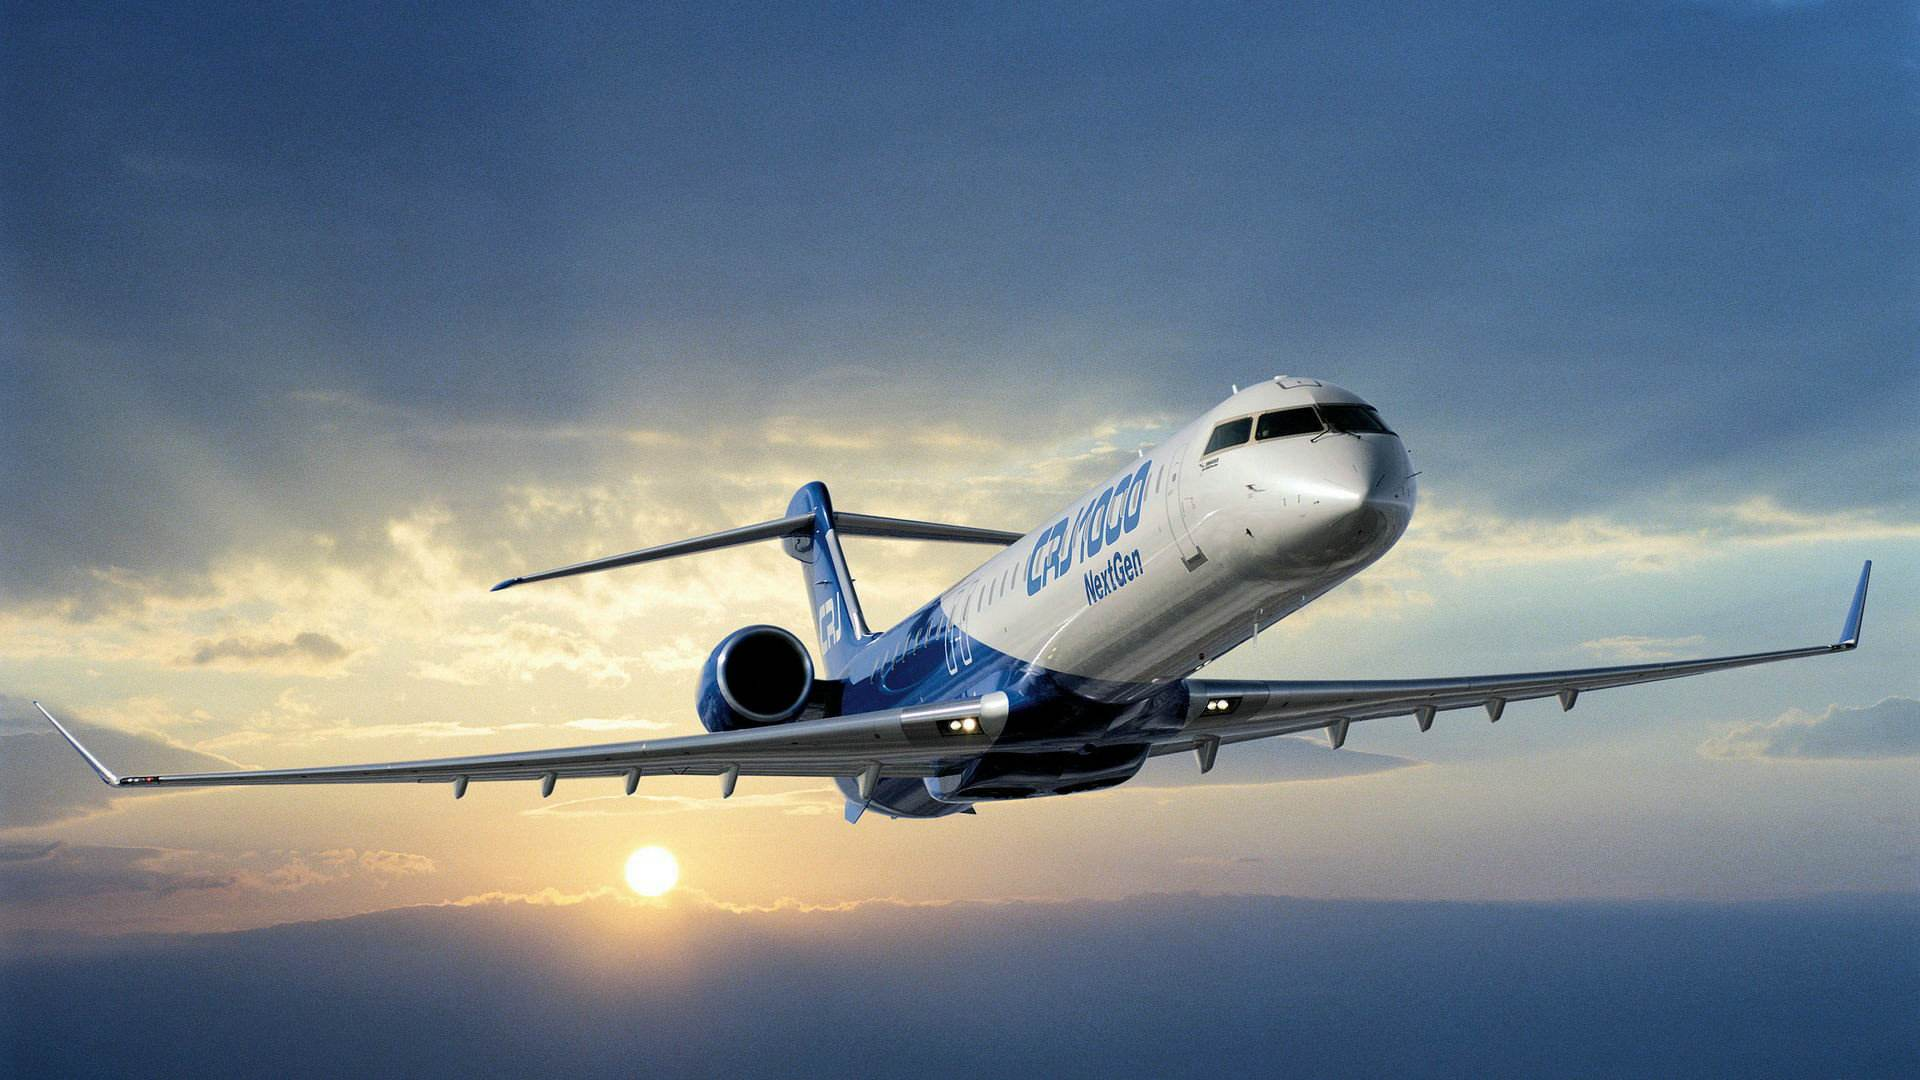 air freight forwarding, air freight service from China to Gothenburg,Stockholm,Sweden